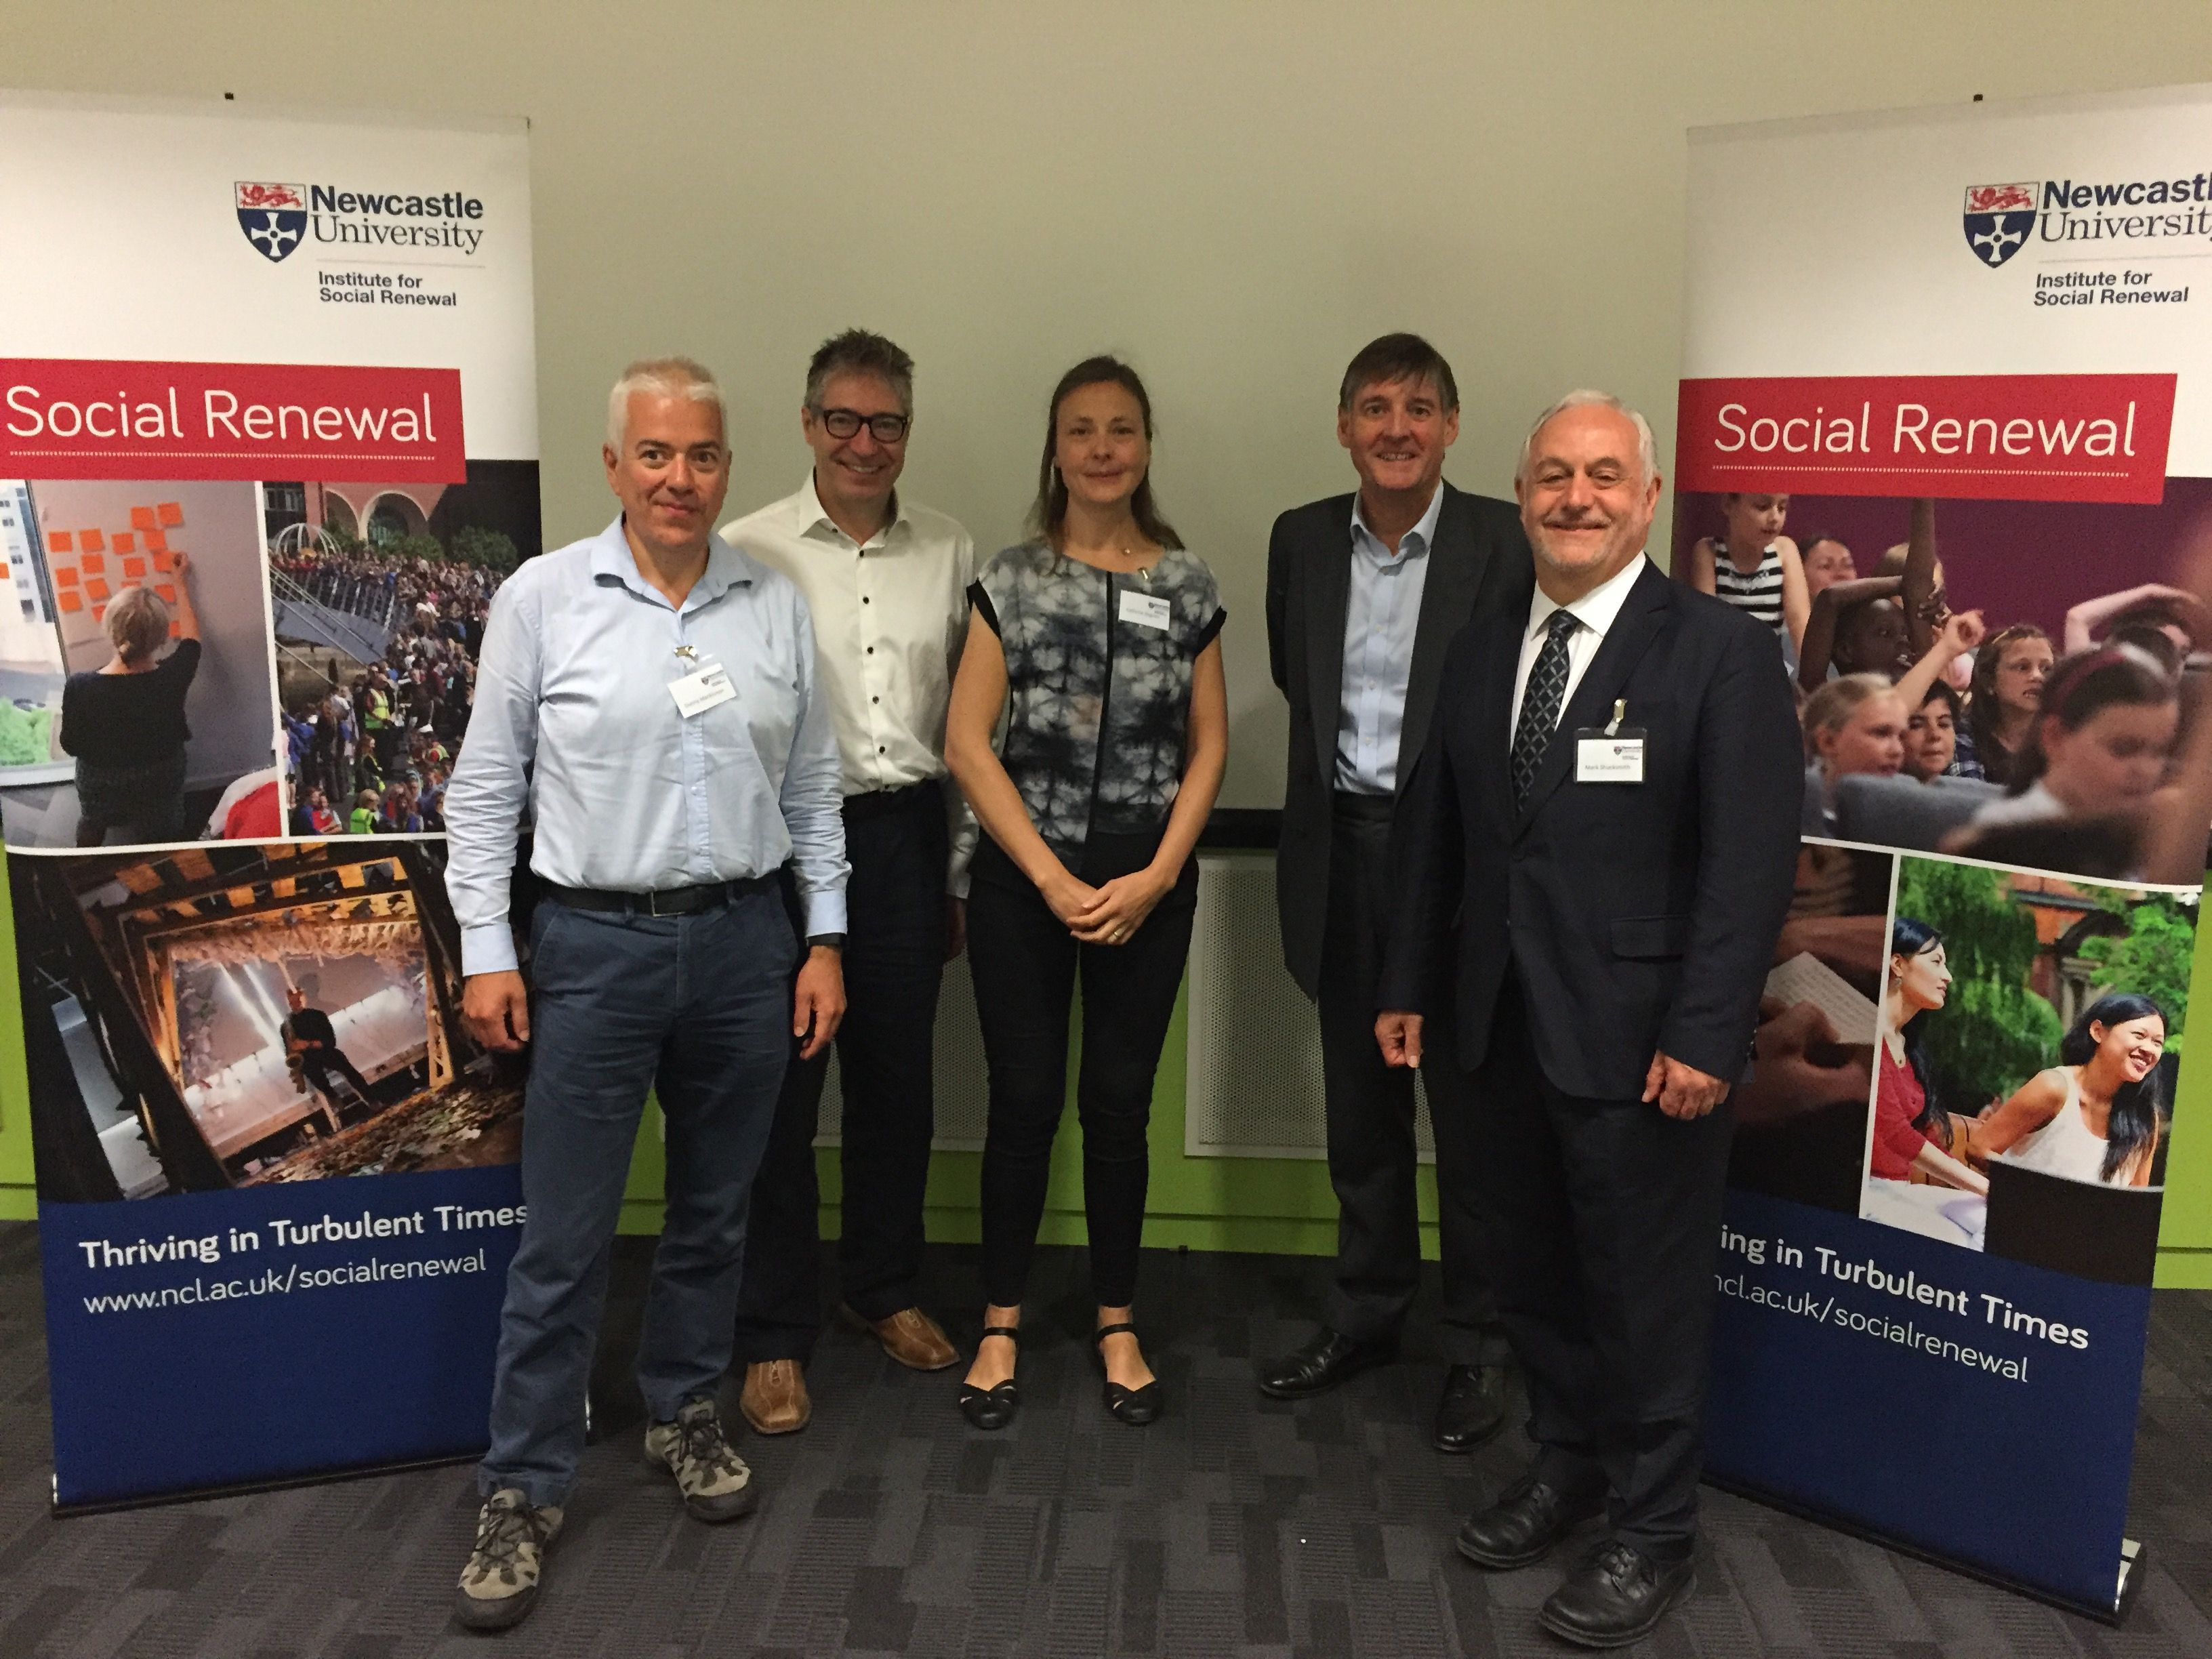 Newcastle University Institute for Social Renewal | We are the